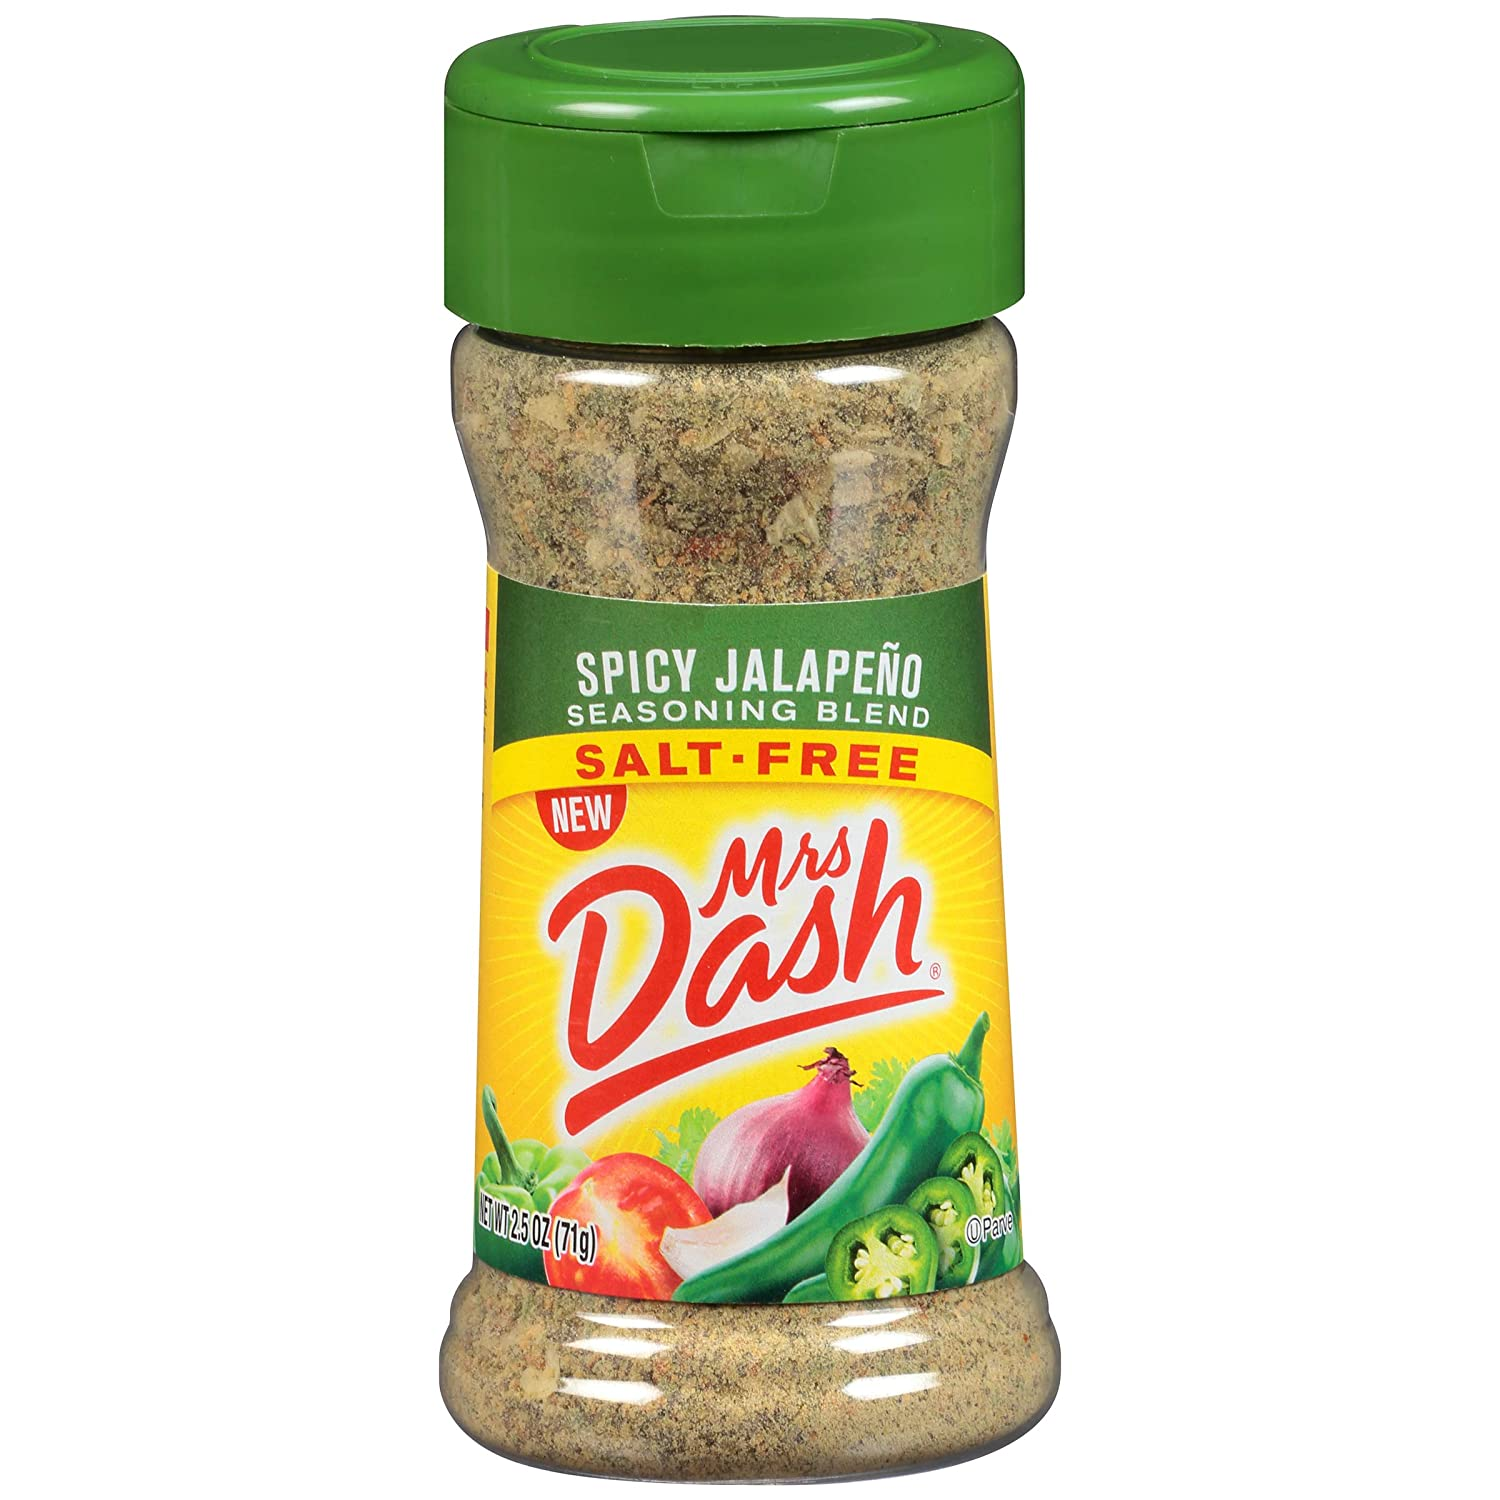 Dash Salt-Free Seasoning Blend, Spicy Jalapeno, 2.5 Ounce (Pack of 12)